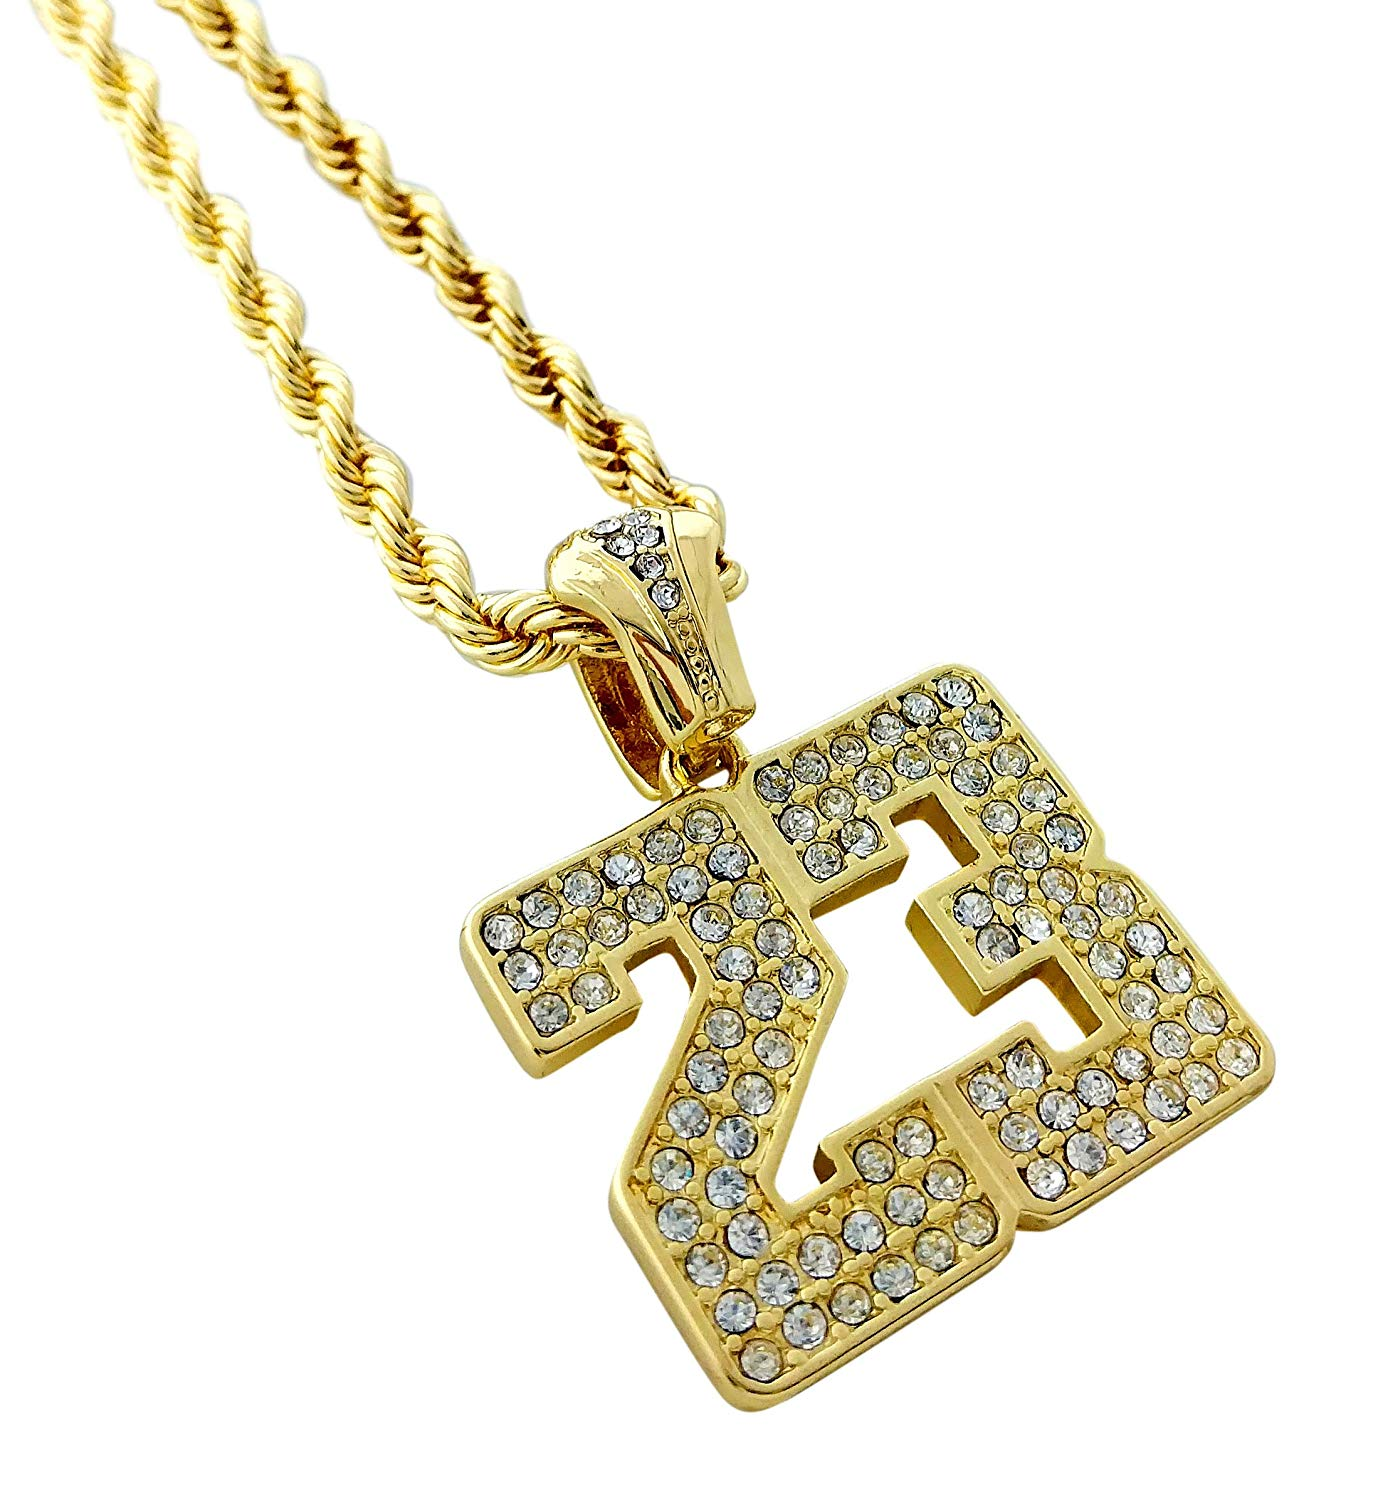 Africa Map New Iced Out Pendant /& 30 Inch 10mm Cuban Link Necklace Medusa Design